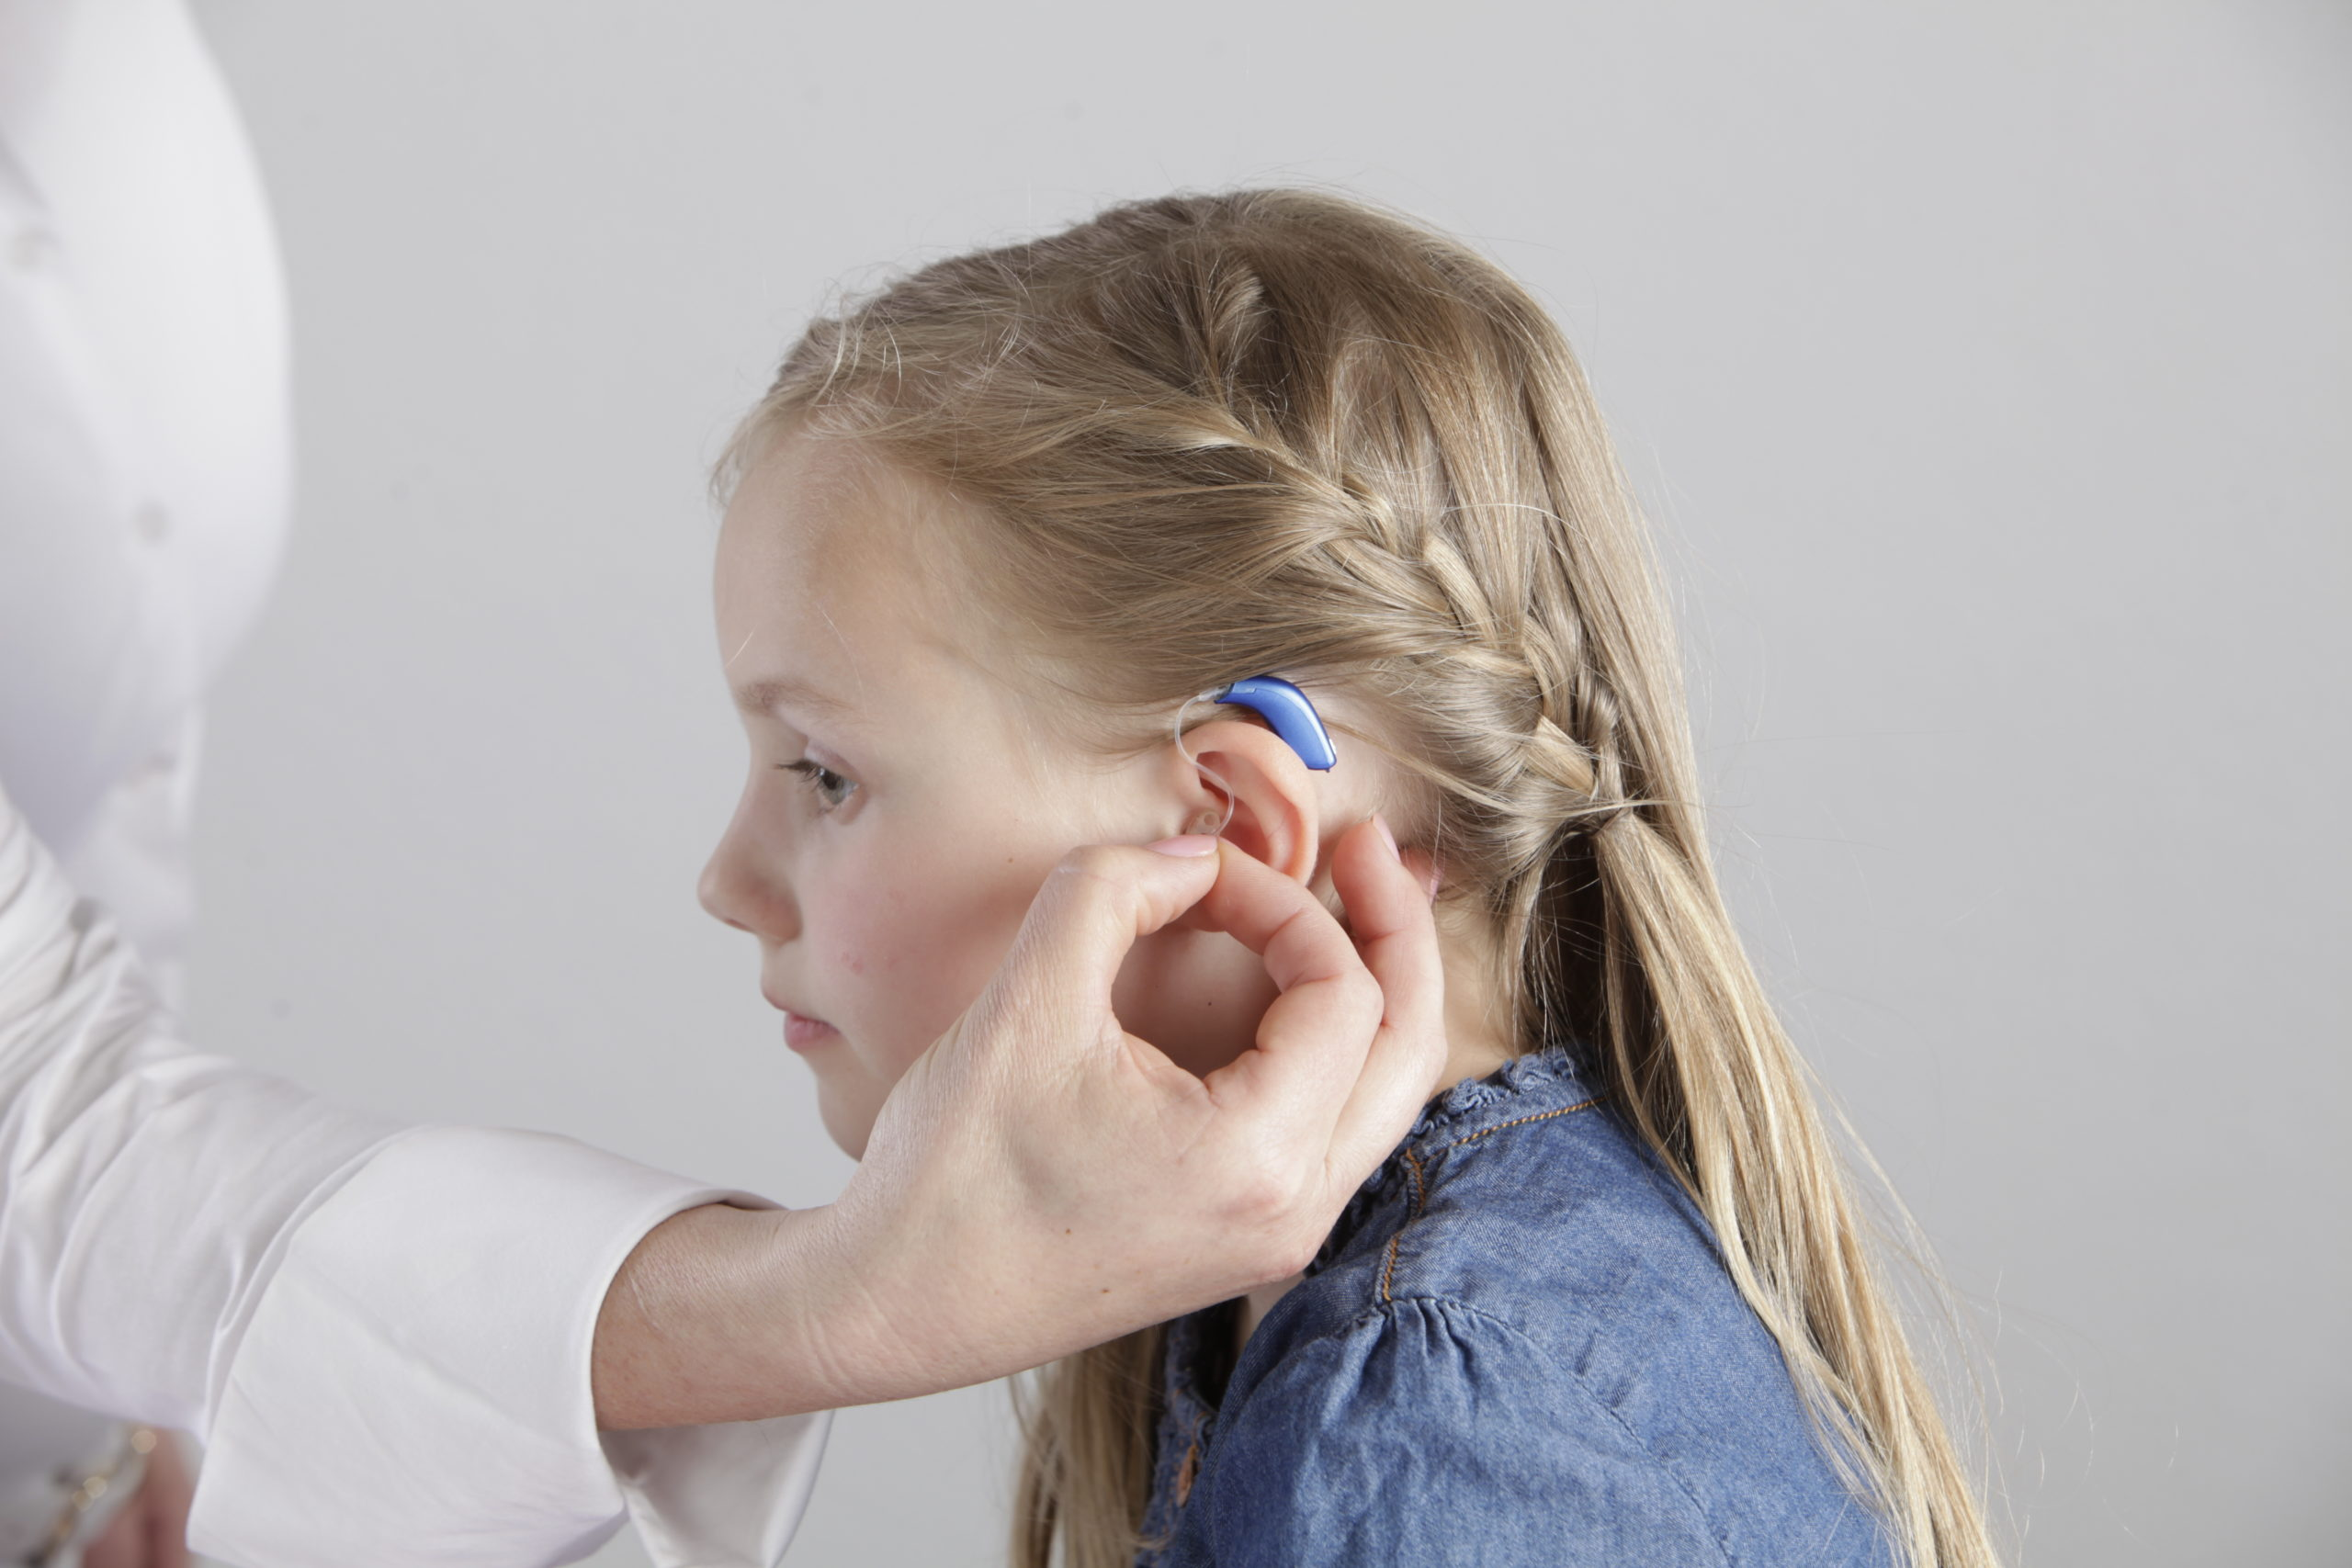 A young girl gets her hearing aid adjusted